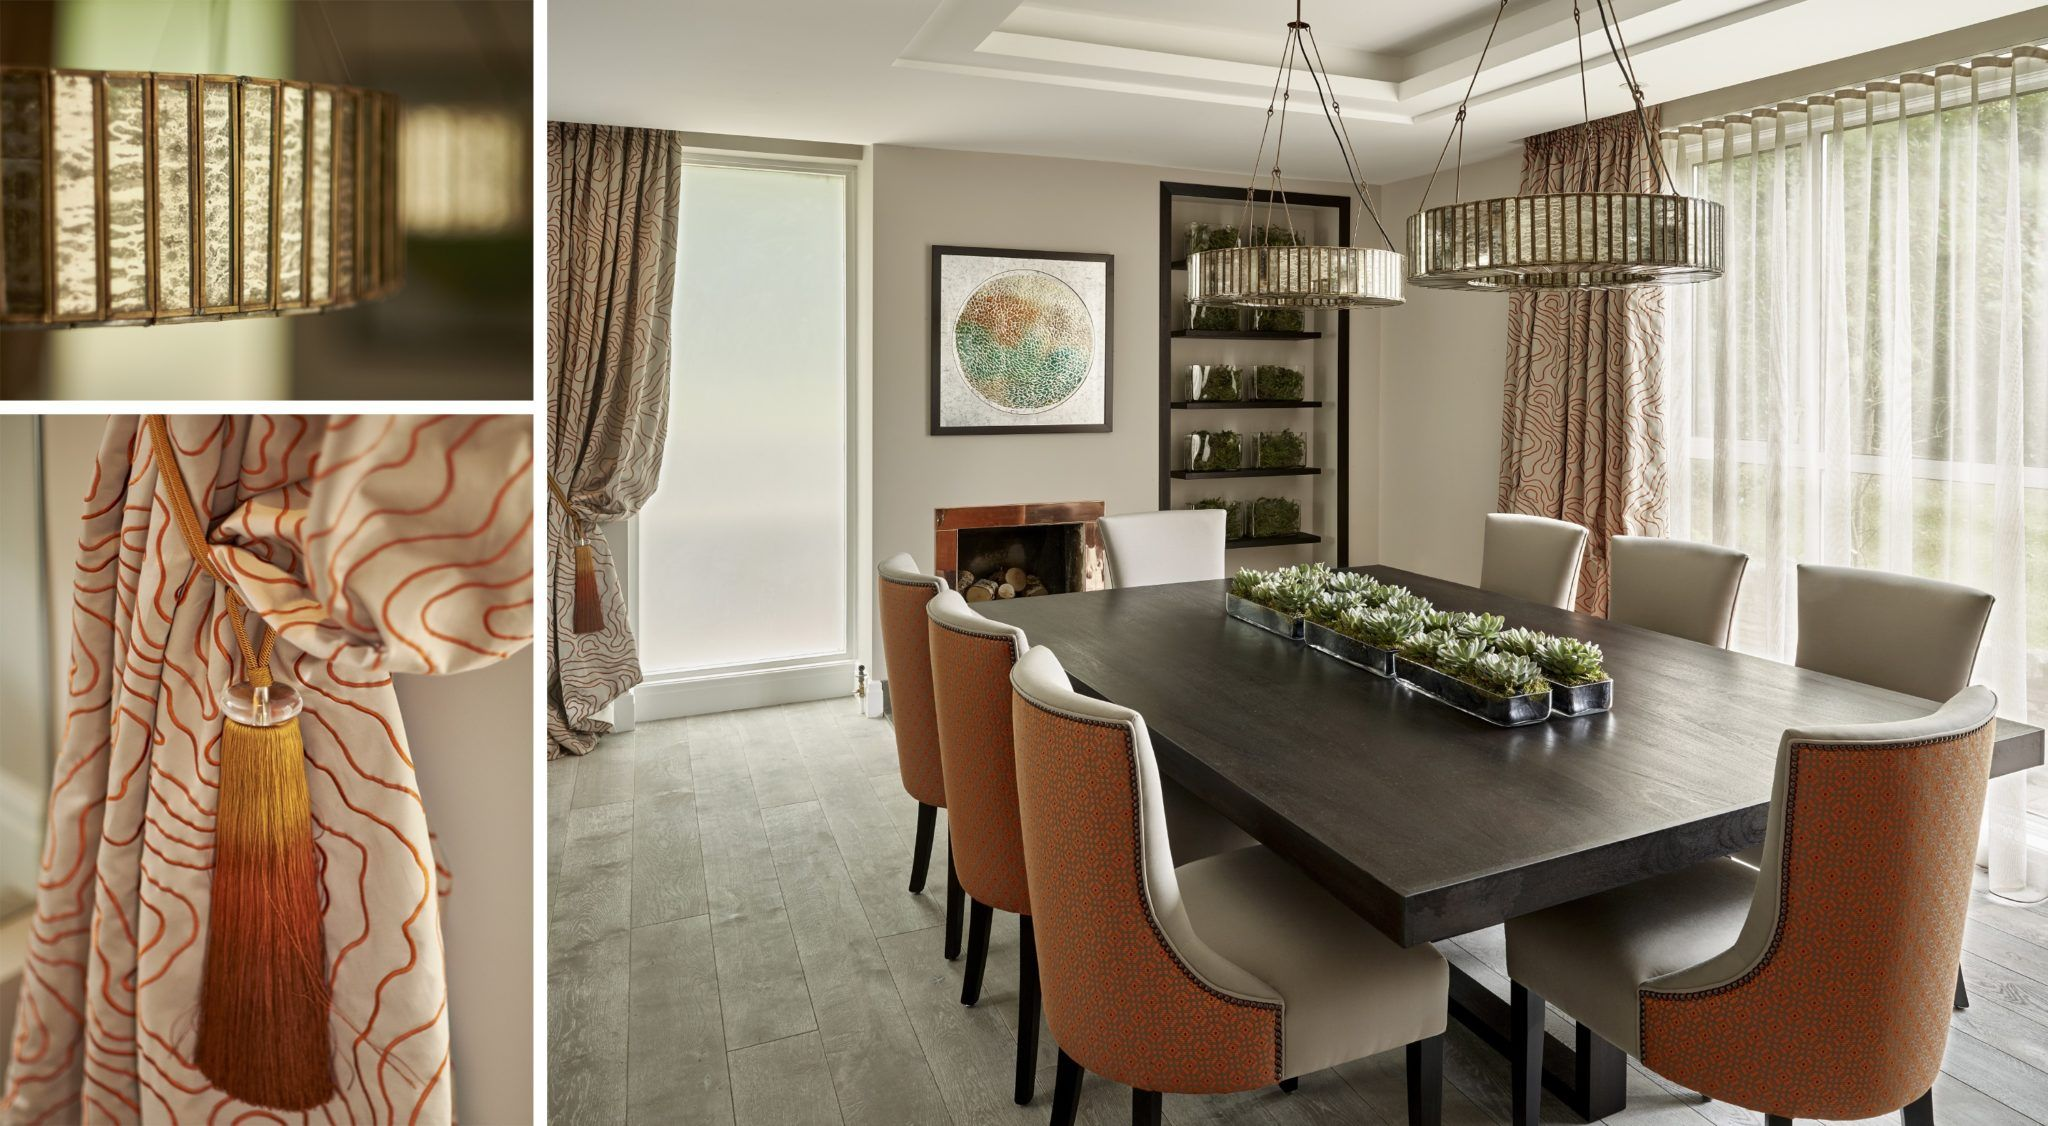 5 bedroom house interior dulwich  tailored living interiors  our portfolio  project in